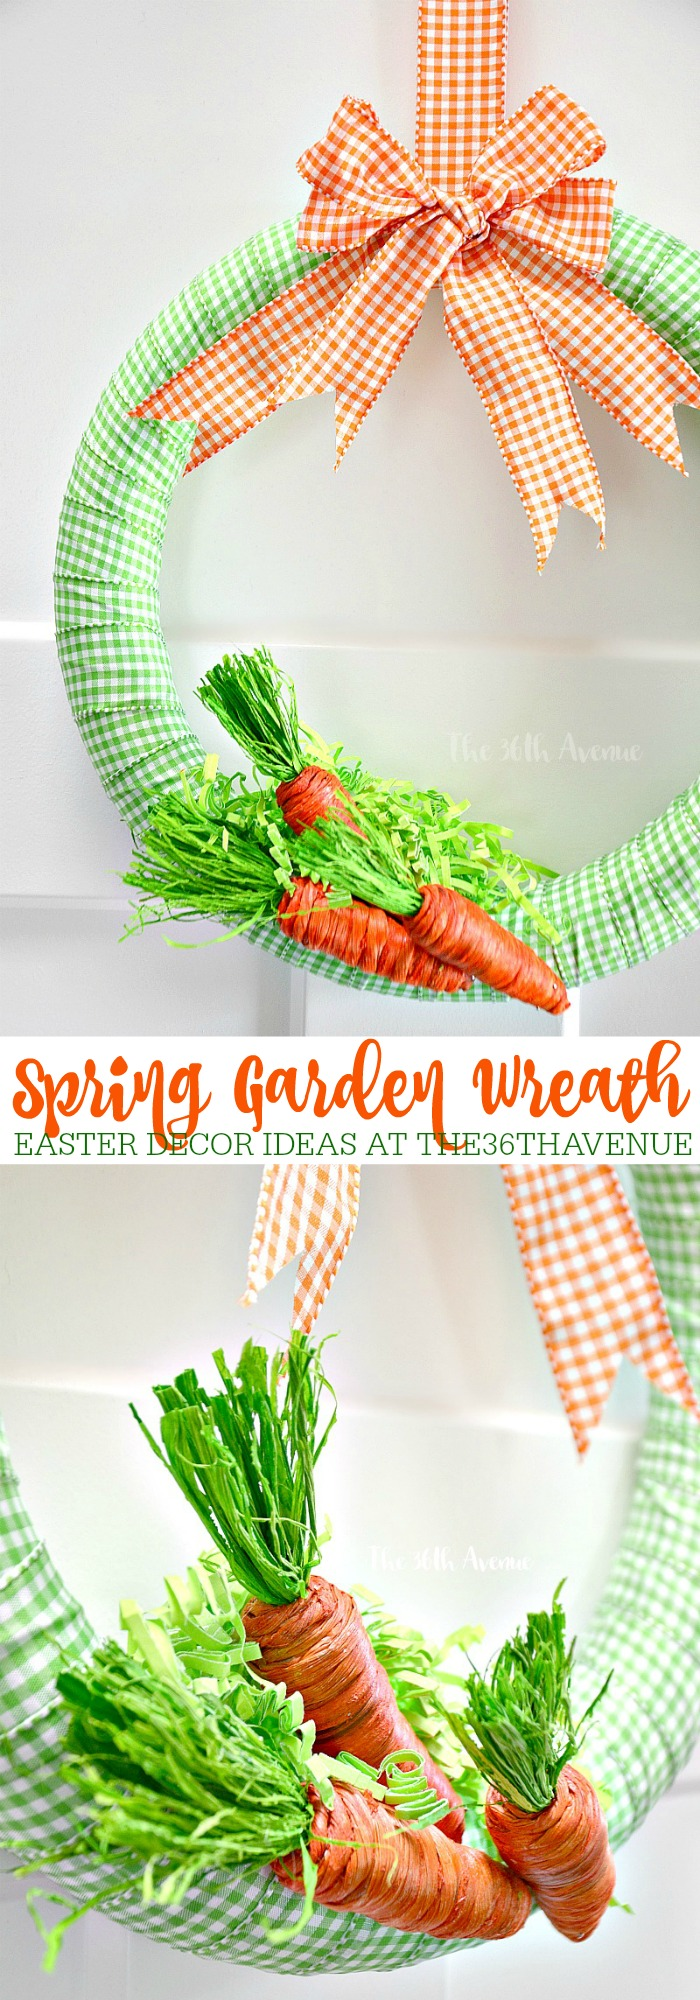 DIY Easter Wreath Tutorial at the36thavenue.com